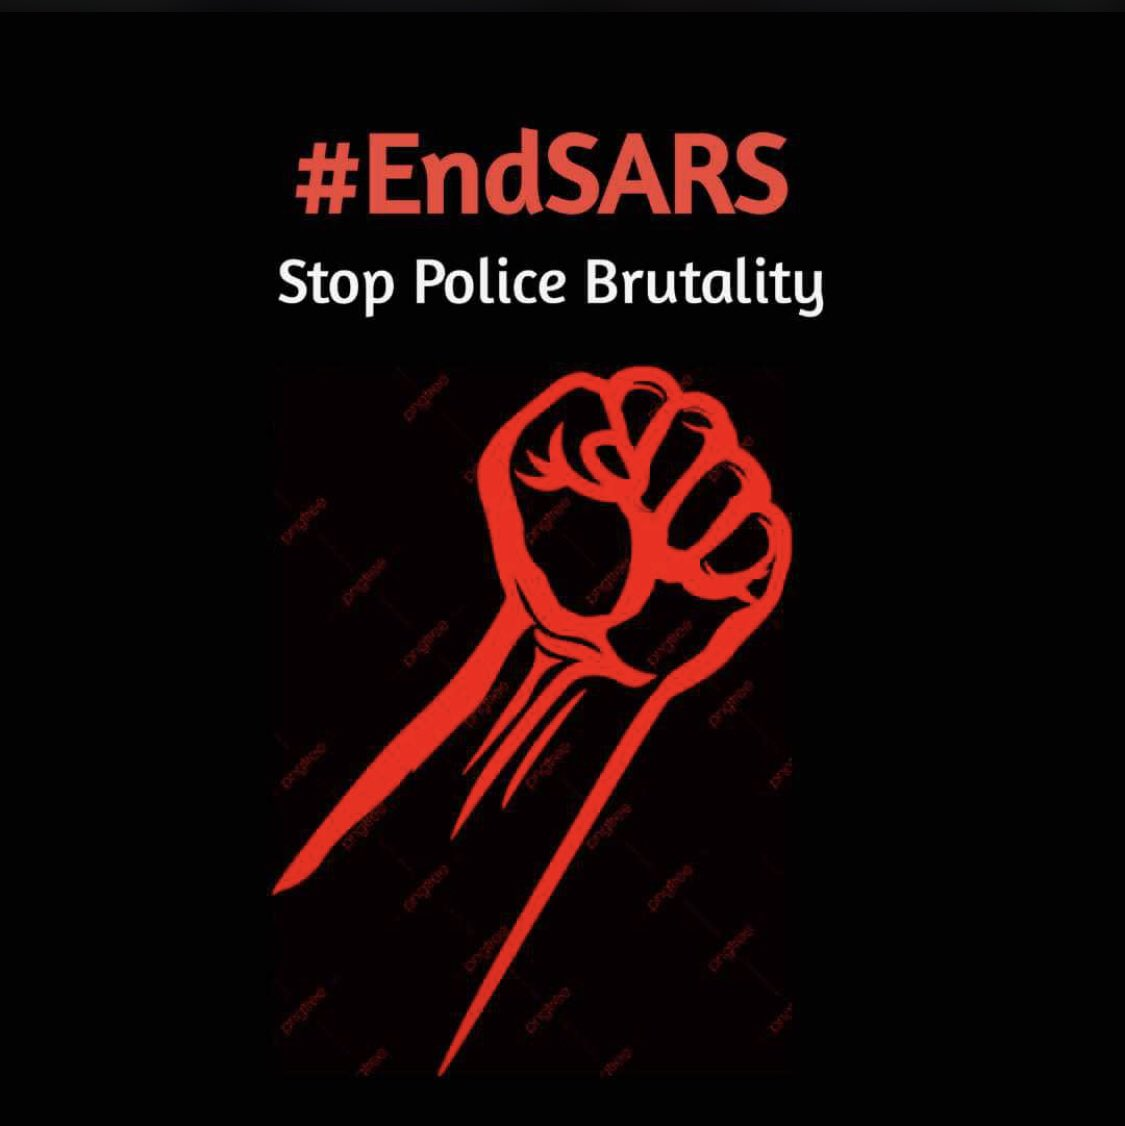 For Jimoh ✊🏽 For Tony Zitta ✊🏽 For Tina Ezekwe ✊🏽 For Kolade Johnson ✊🏽 For Chibuike Anams ✊🏽 For Ifeoma Abugu ✊🏽 For Tiyamiu Kazeem ✊🏽 For Solomon Eze ✊🏽 For the 8people killed in Ogbomoso ✊🏿 If you feel tired, If you feel exhausted, Remember those that died. #SARSMUSTEND